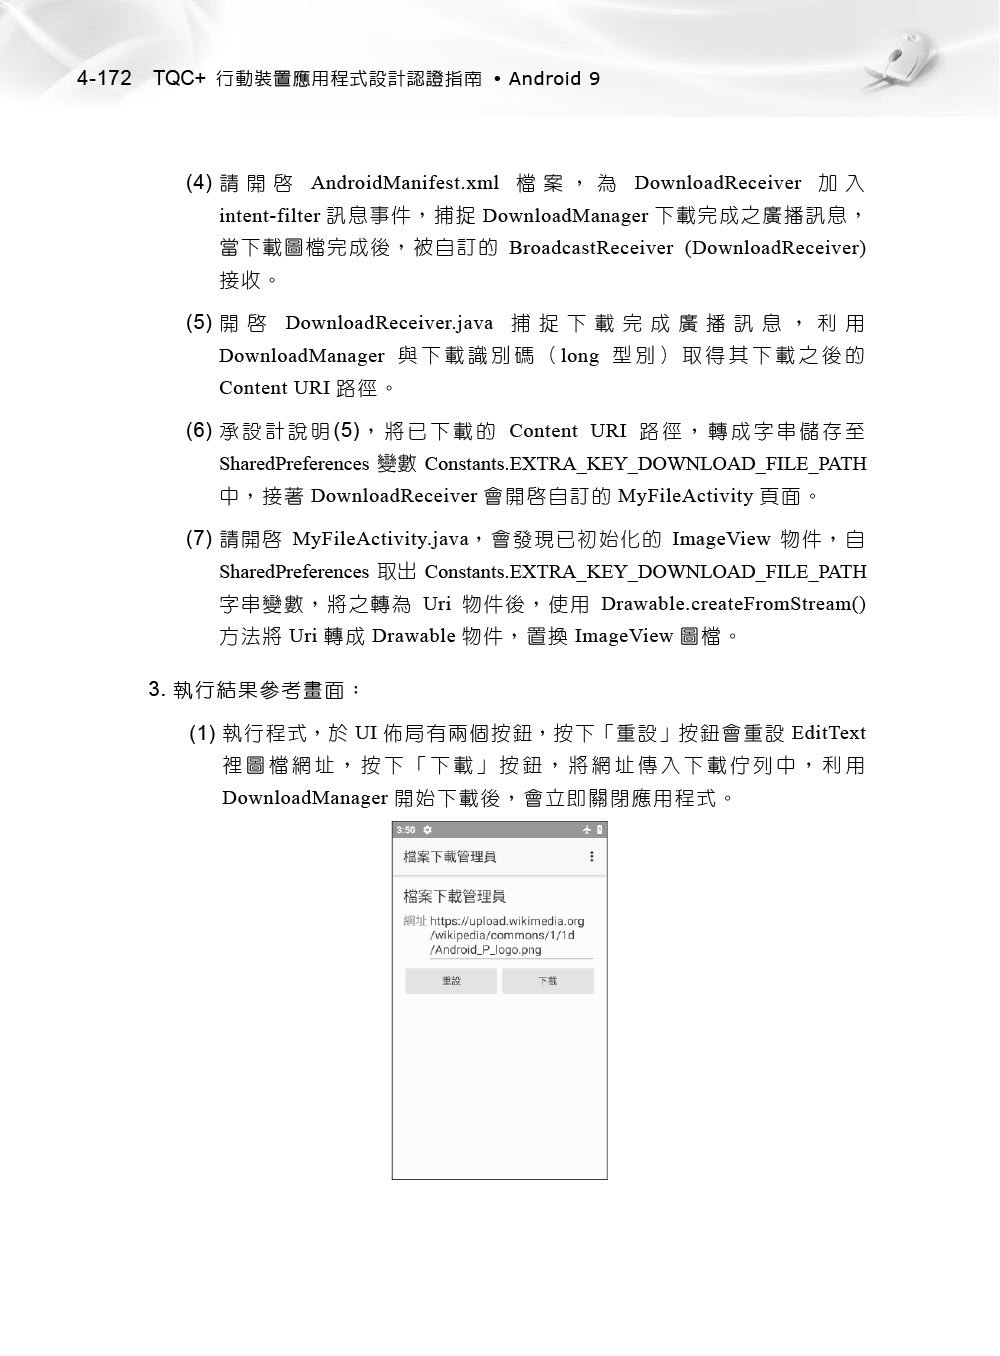 TQC+ 行動裝置應用程式設計認證指南 Android 9-preview-7